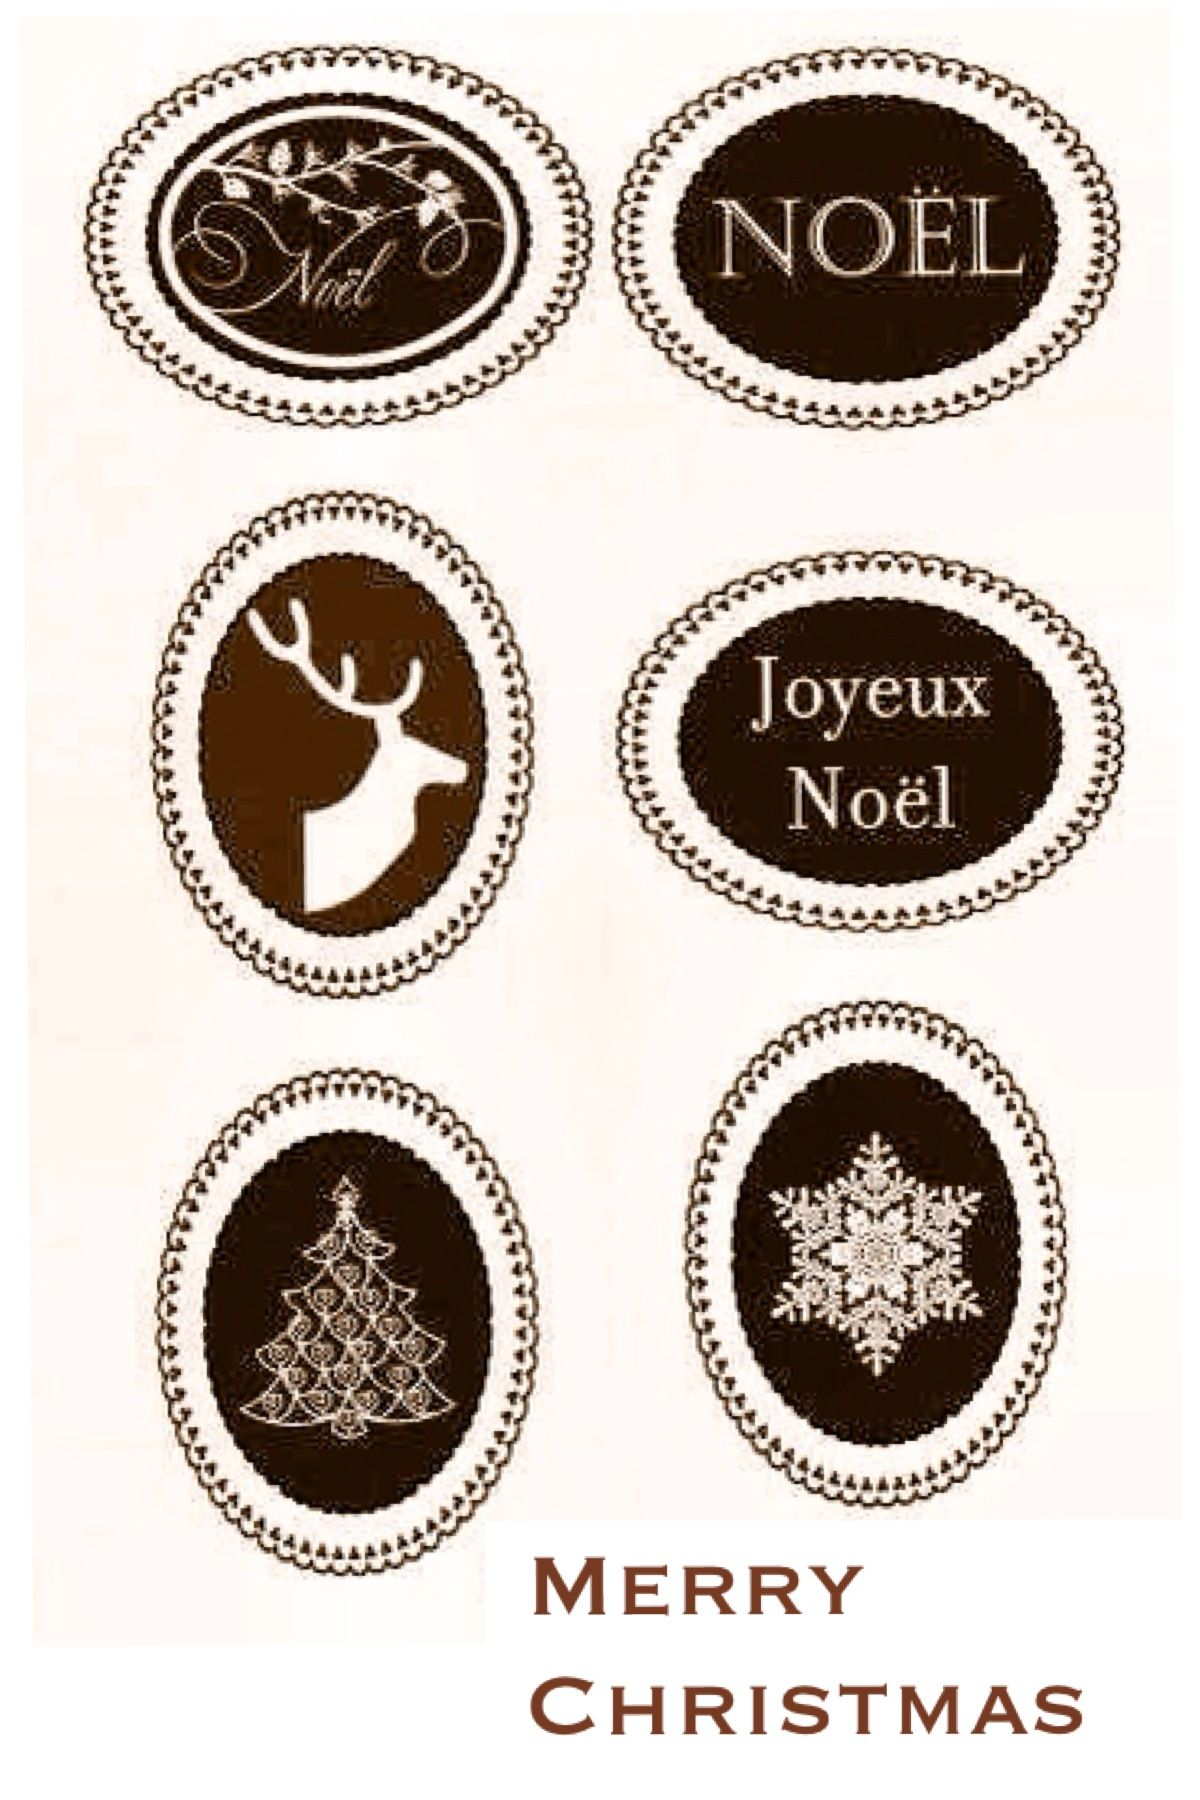 Free Printable Christmas Labels Rustic Labels And Tags Save Image Into Your Camera Roll Email